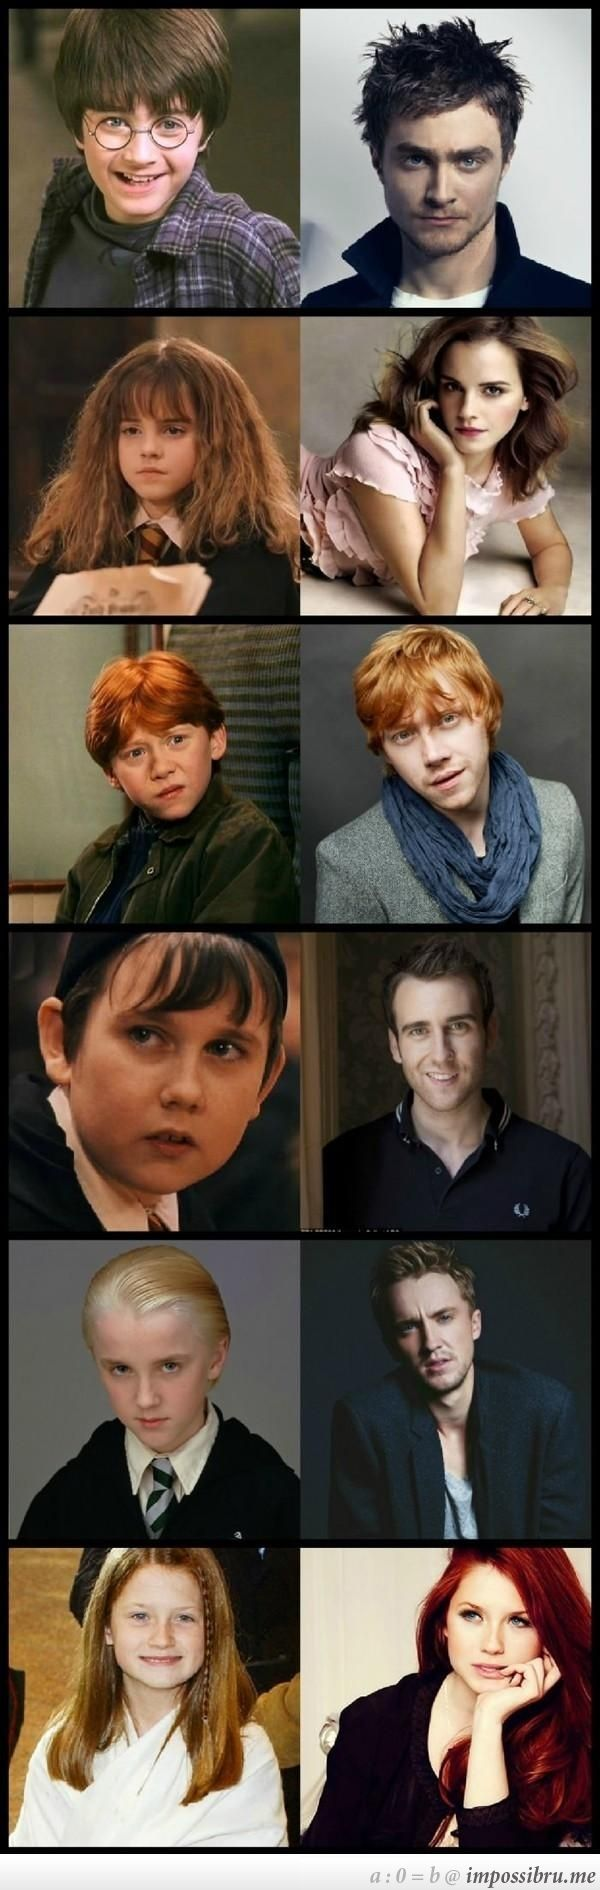 YOU CANNOT TELL ME THERE WASN'T MAGIC INVOLVED HERE! Haha Before and after they all look so different #pottertime #mindhplove